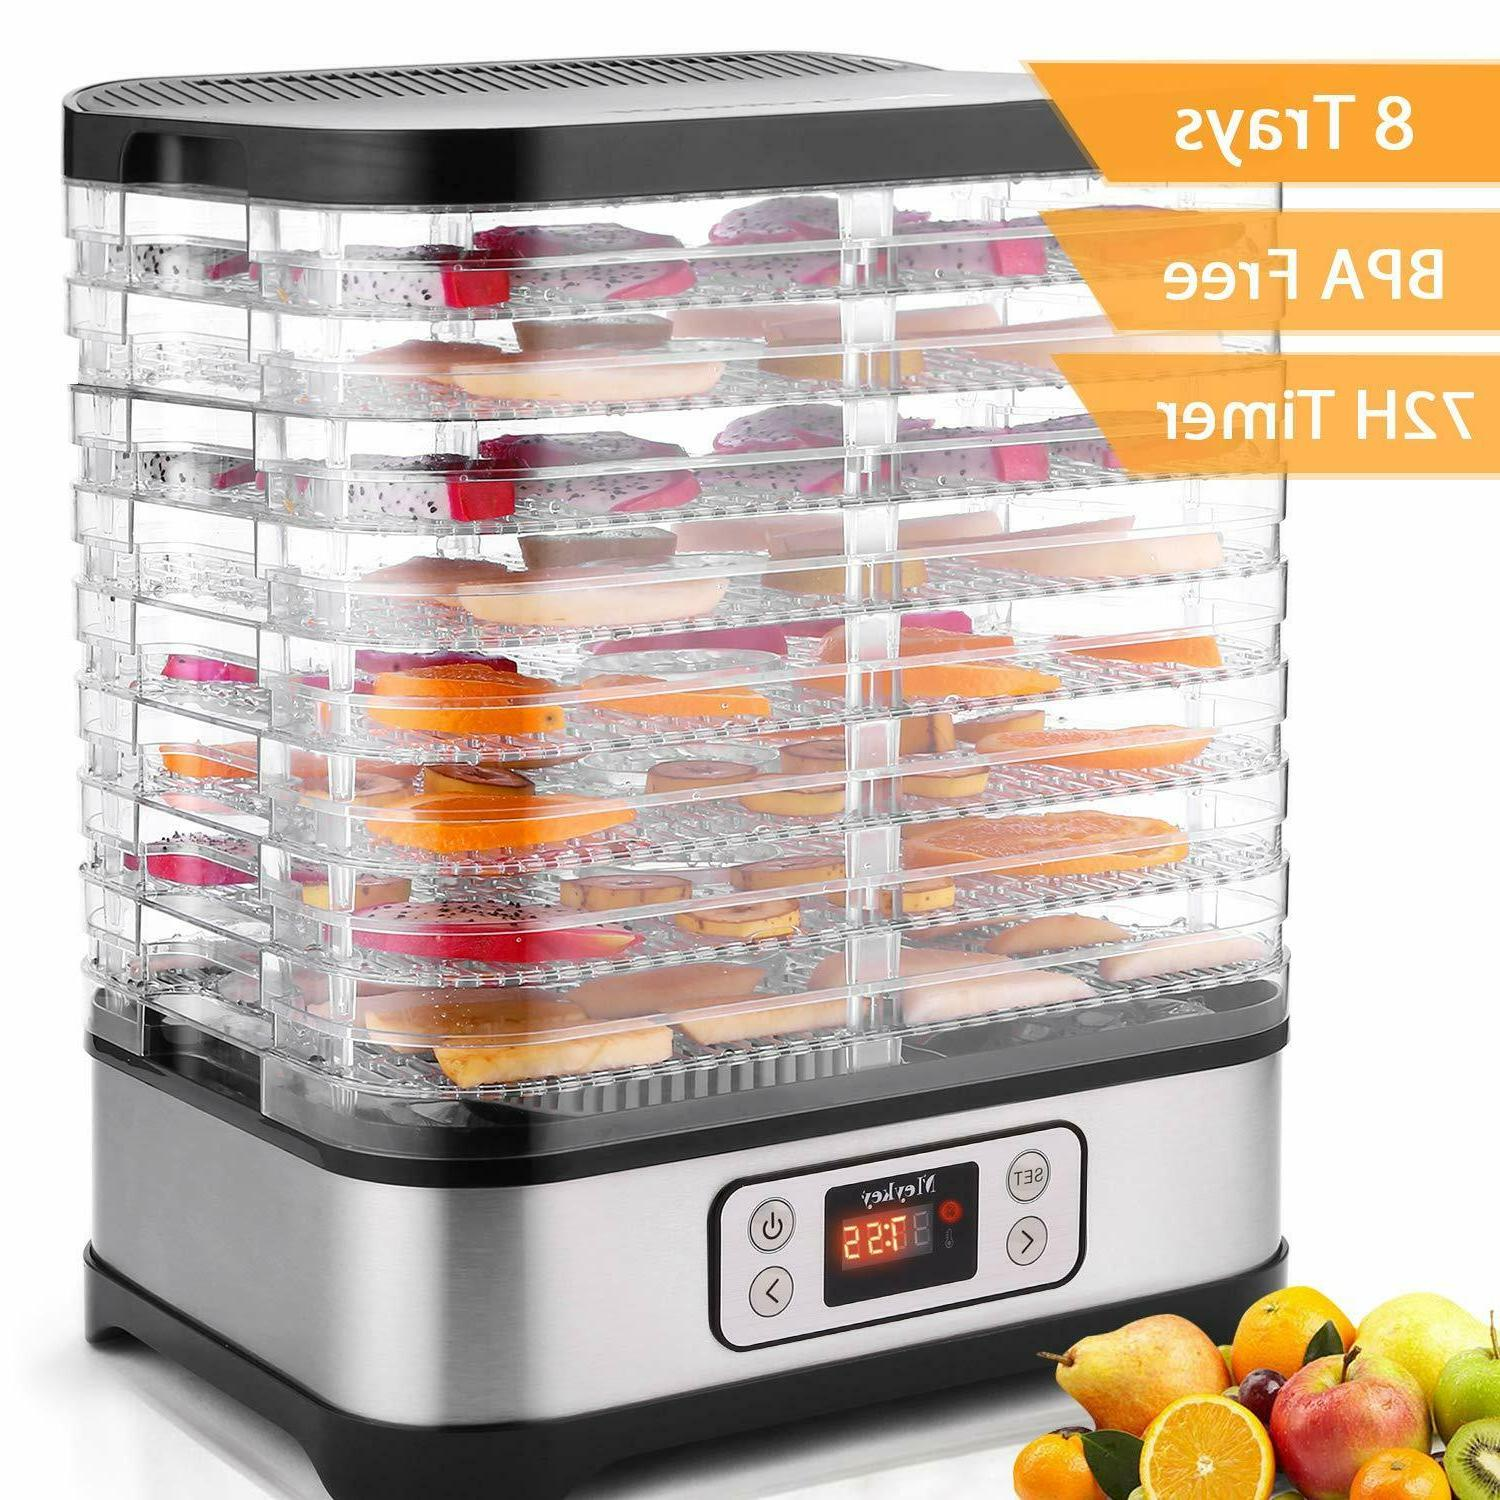 8 layers 400w stainless steel food dehydrator